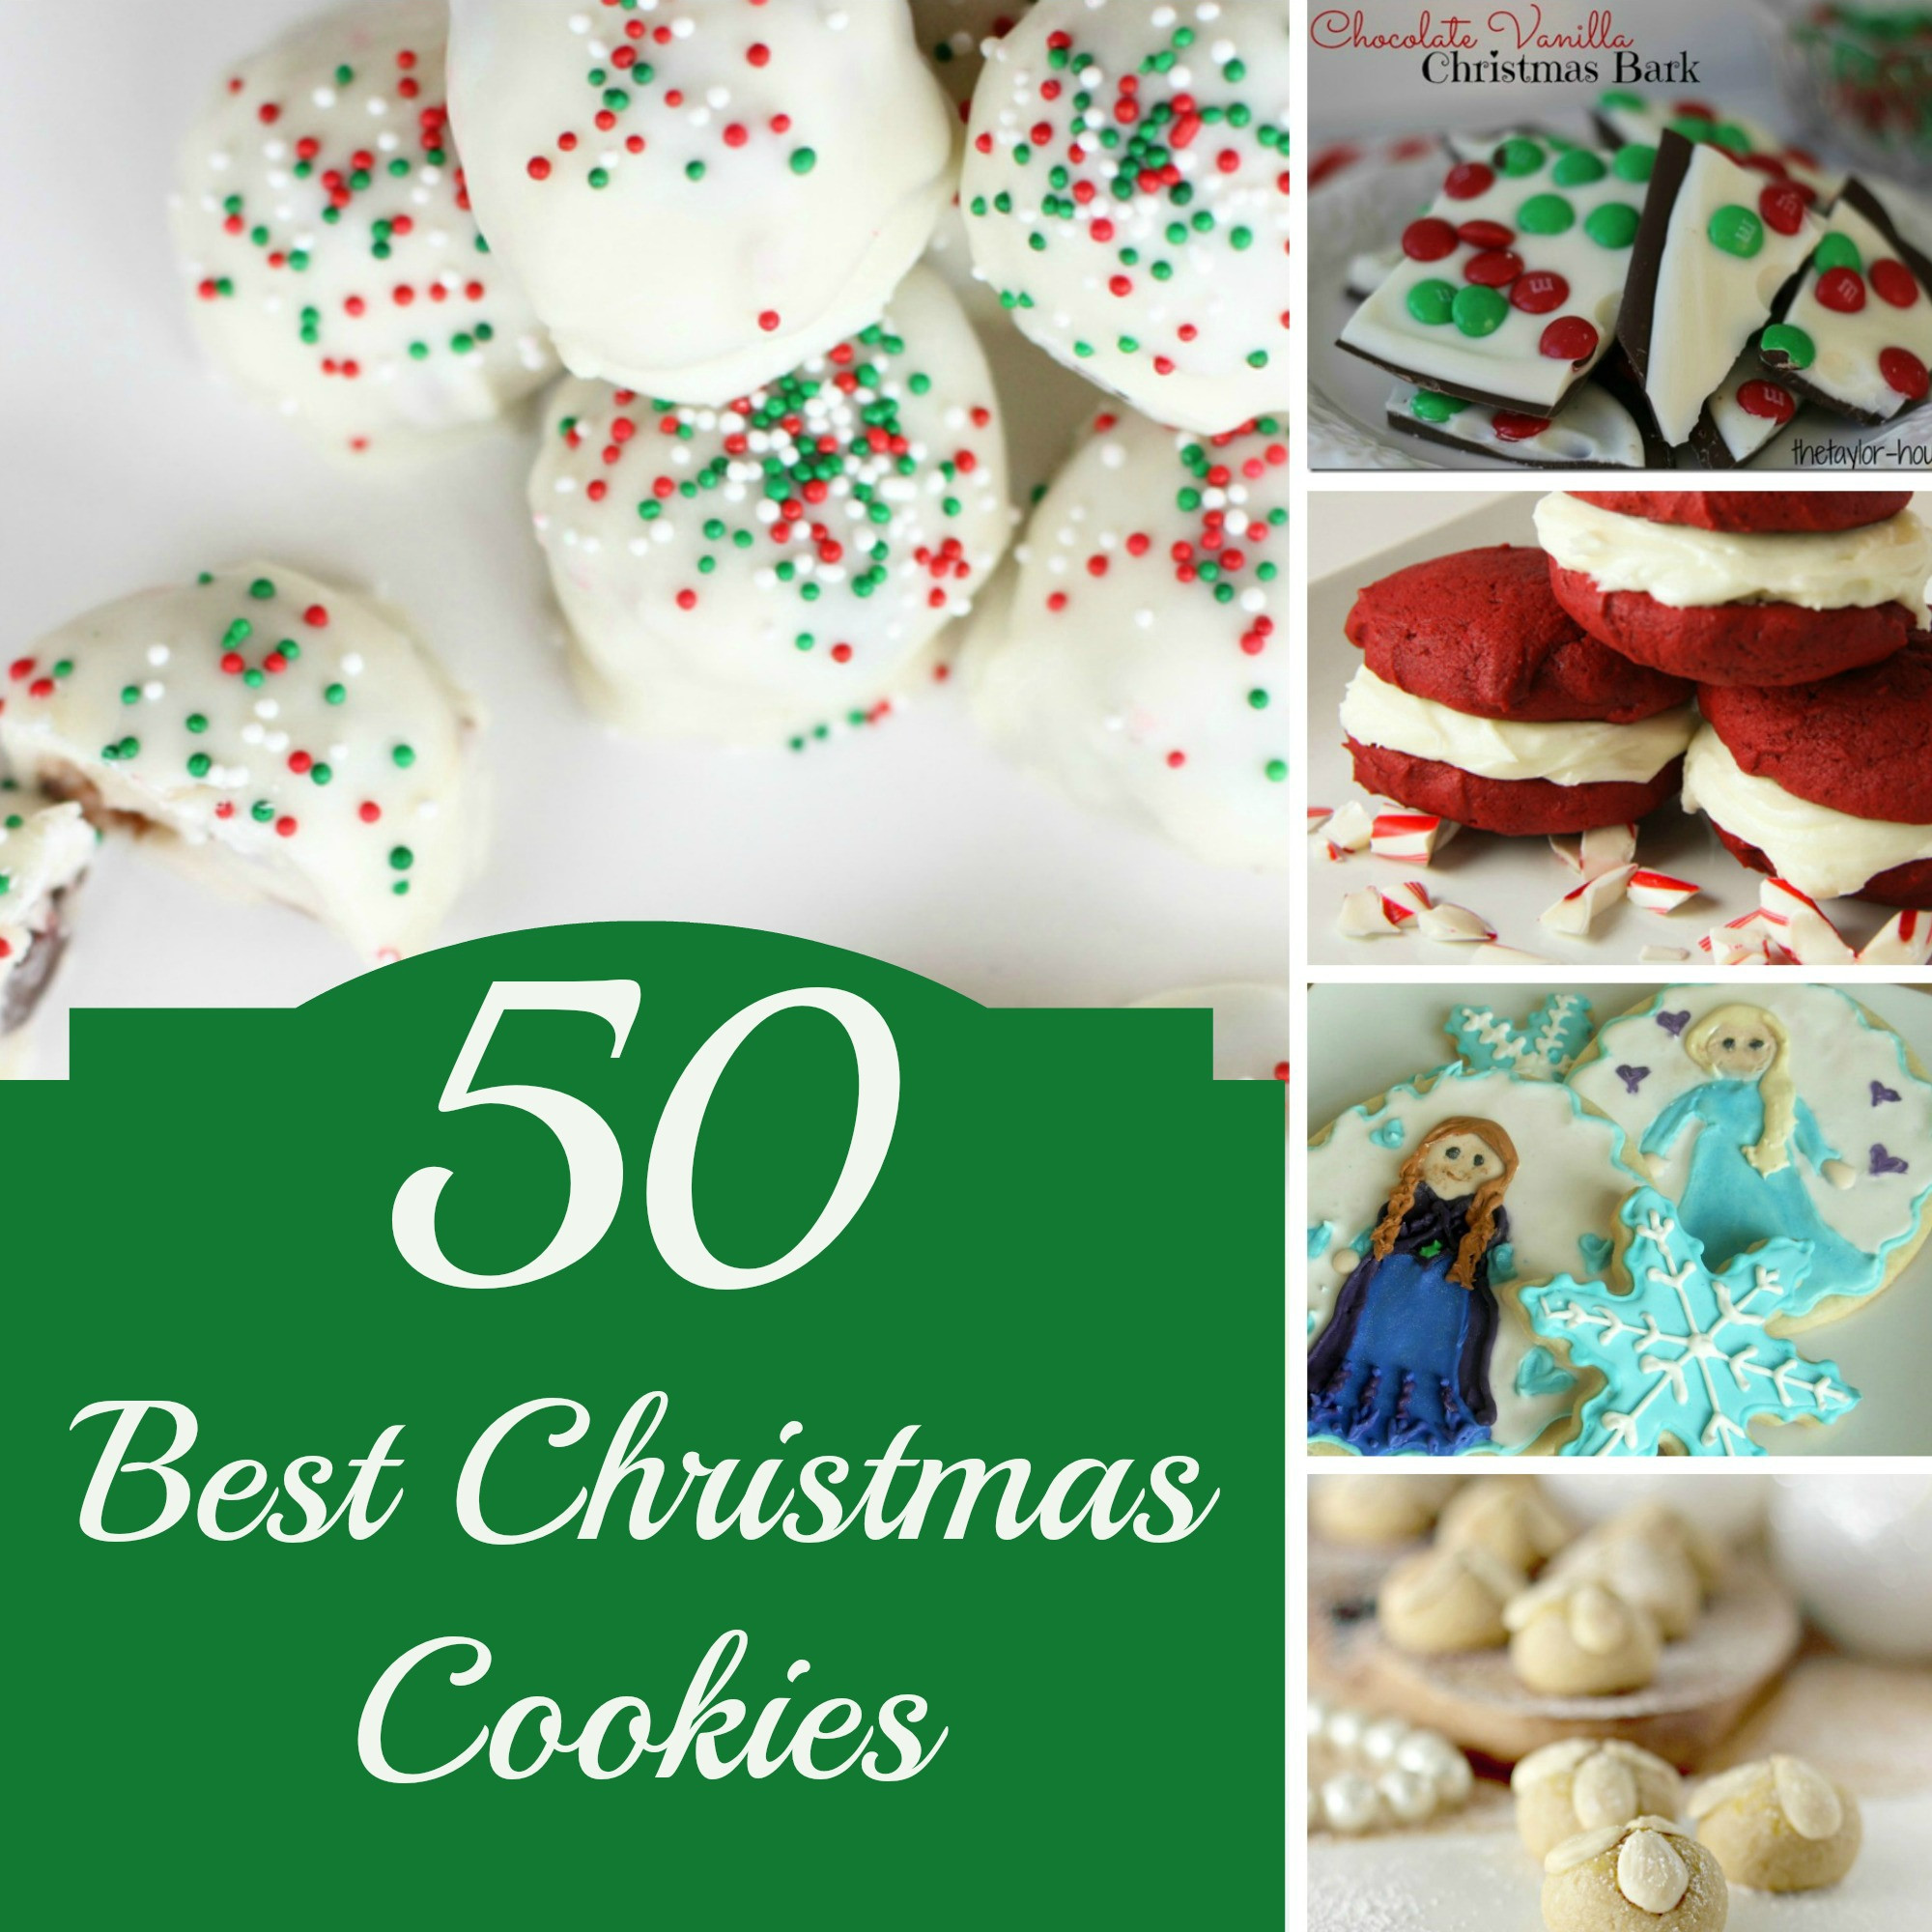 The Best Christmas Cookies Recipes  50 BEST Christmas Cookies to Make this Year